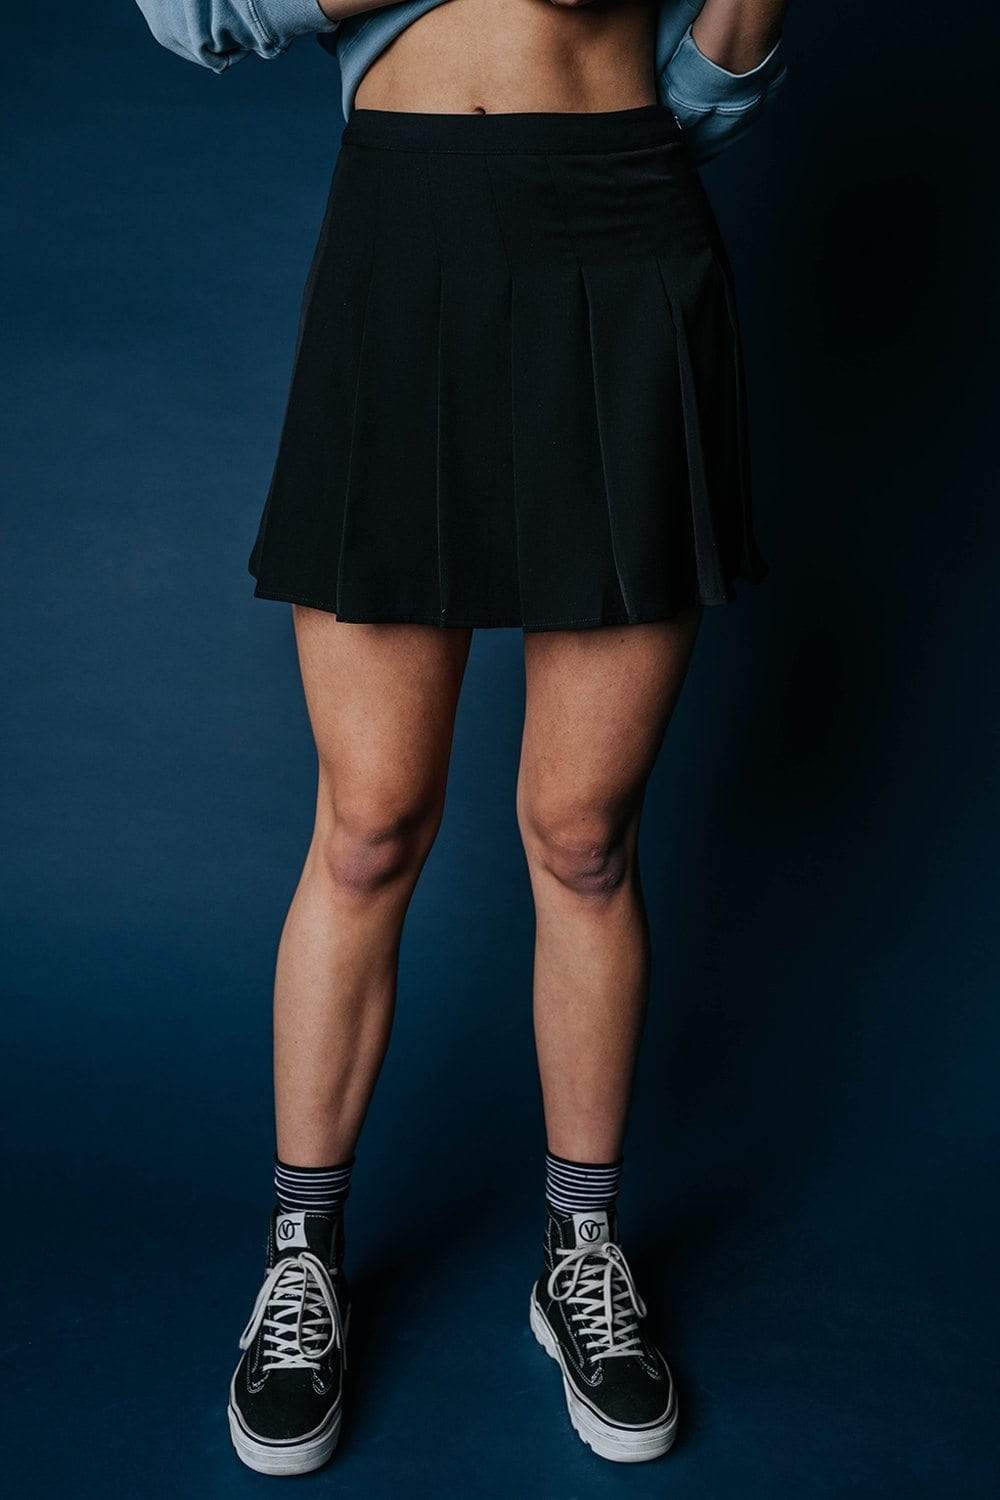 The Williams Tennis Skirt in Black, cladandcloth, Bailey Rose.